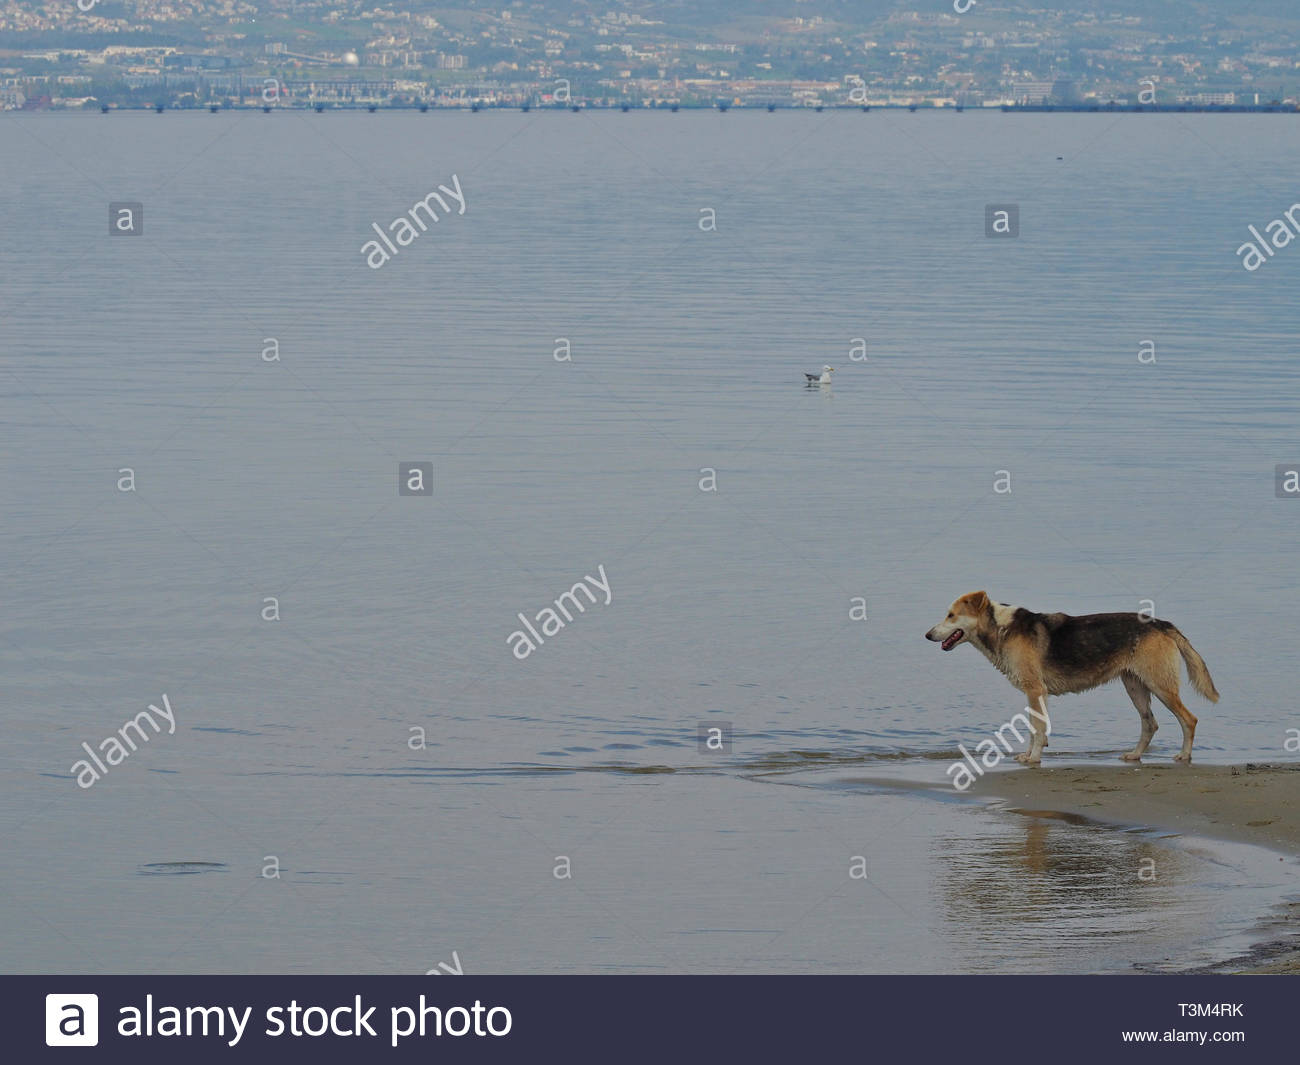 one stray dog playing at the beach - Stock Image